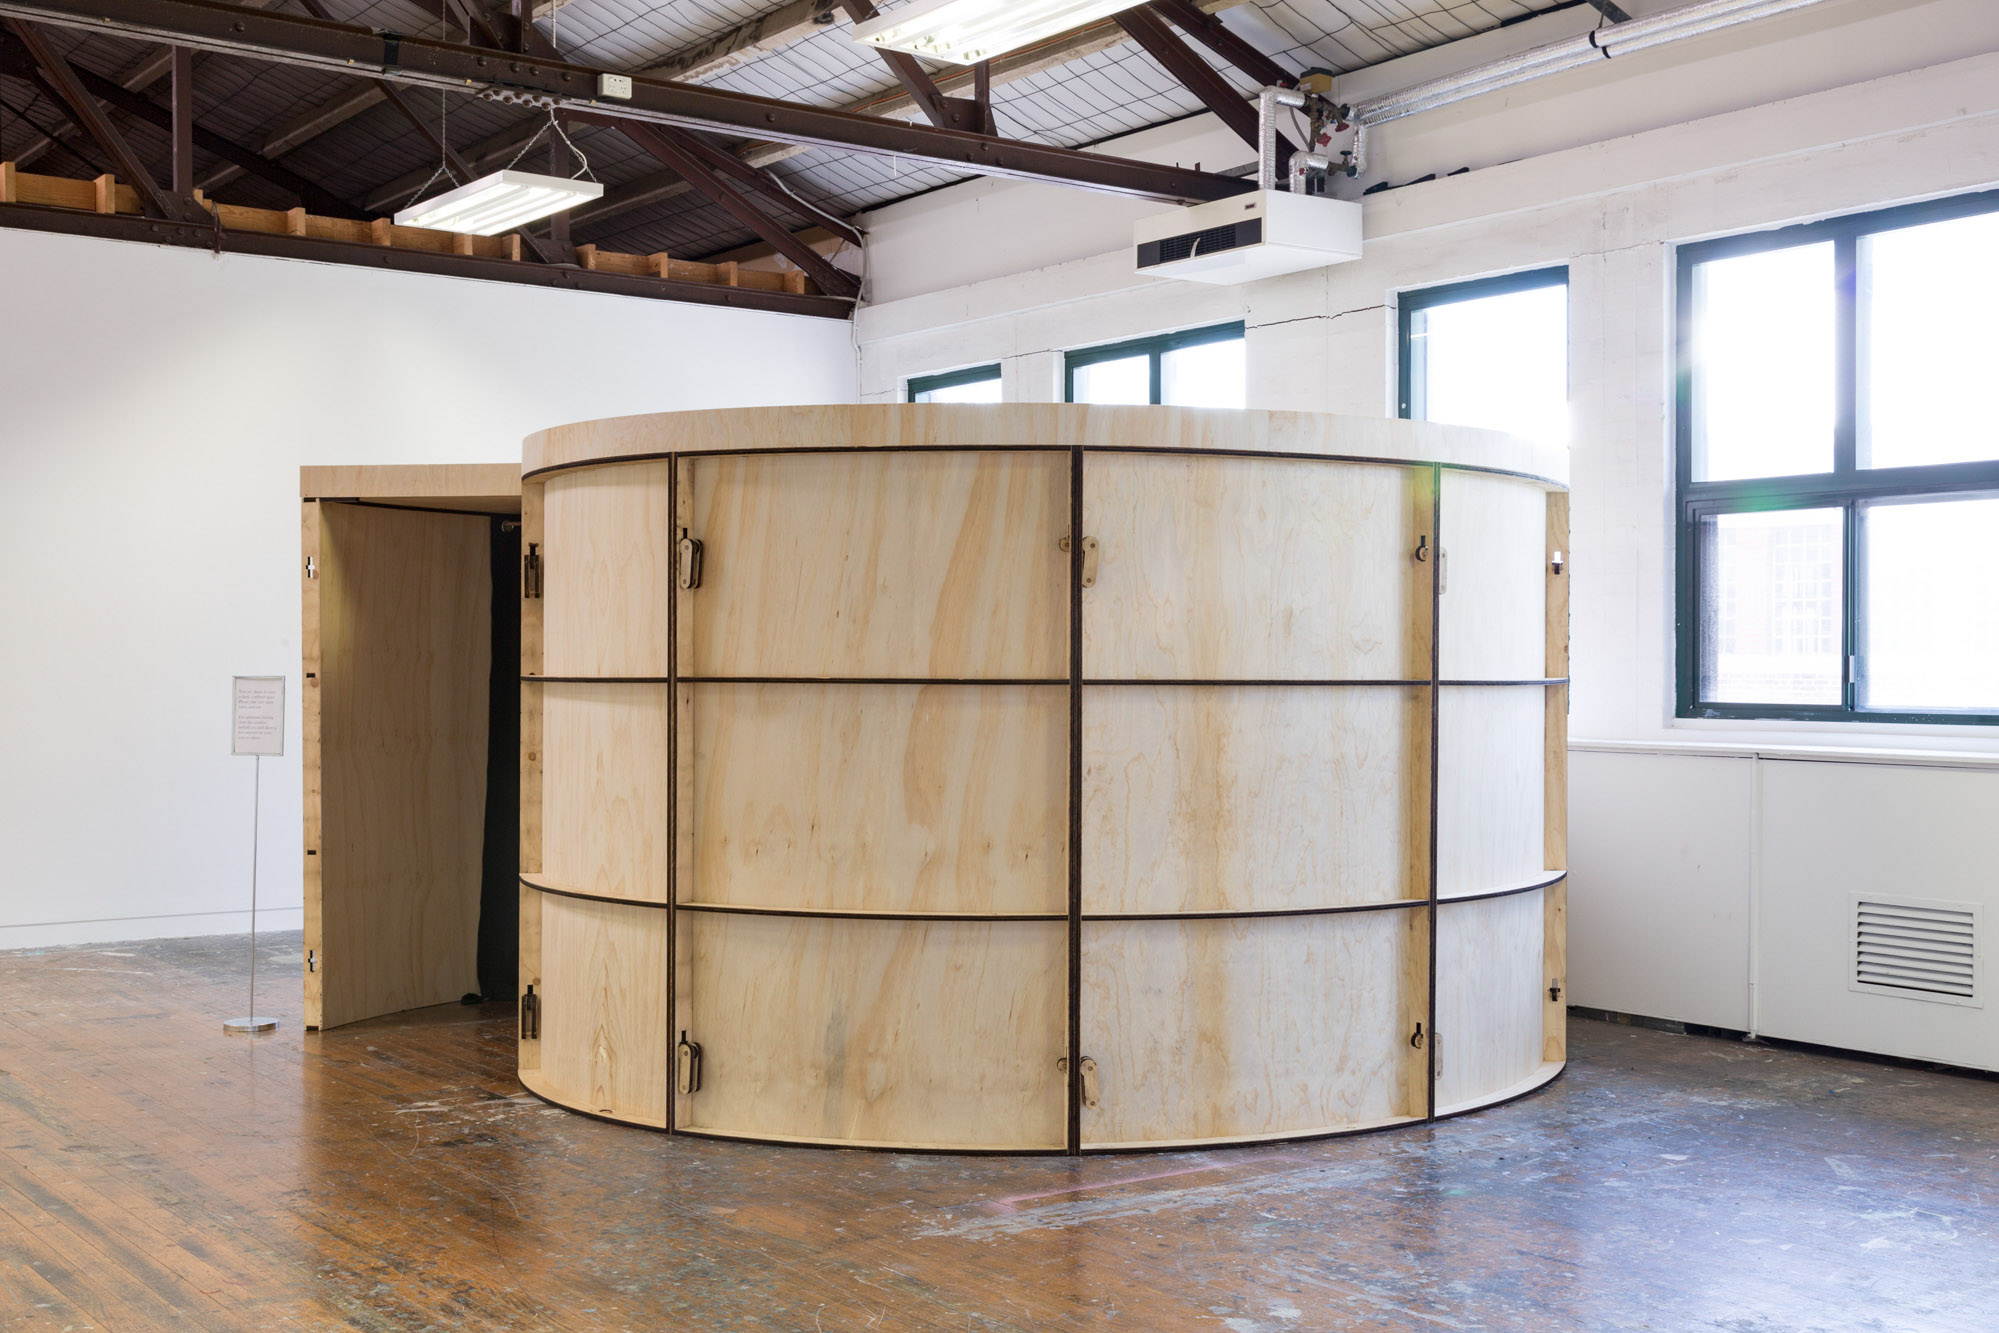 Camera obscura (Boon Wurrung and Wurundjeri), 2016. Plywood, timber, curtains, cardboard, dimensions variable.